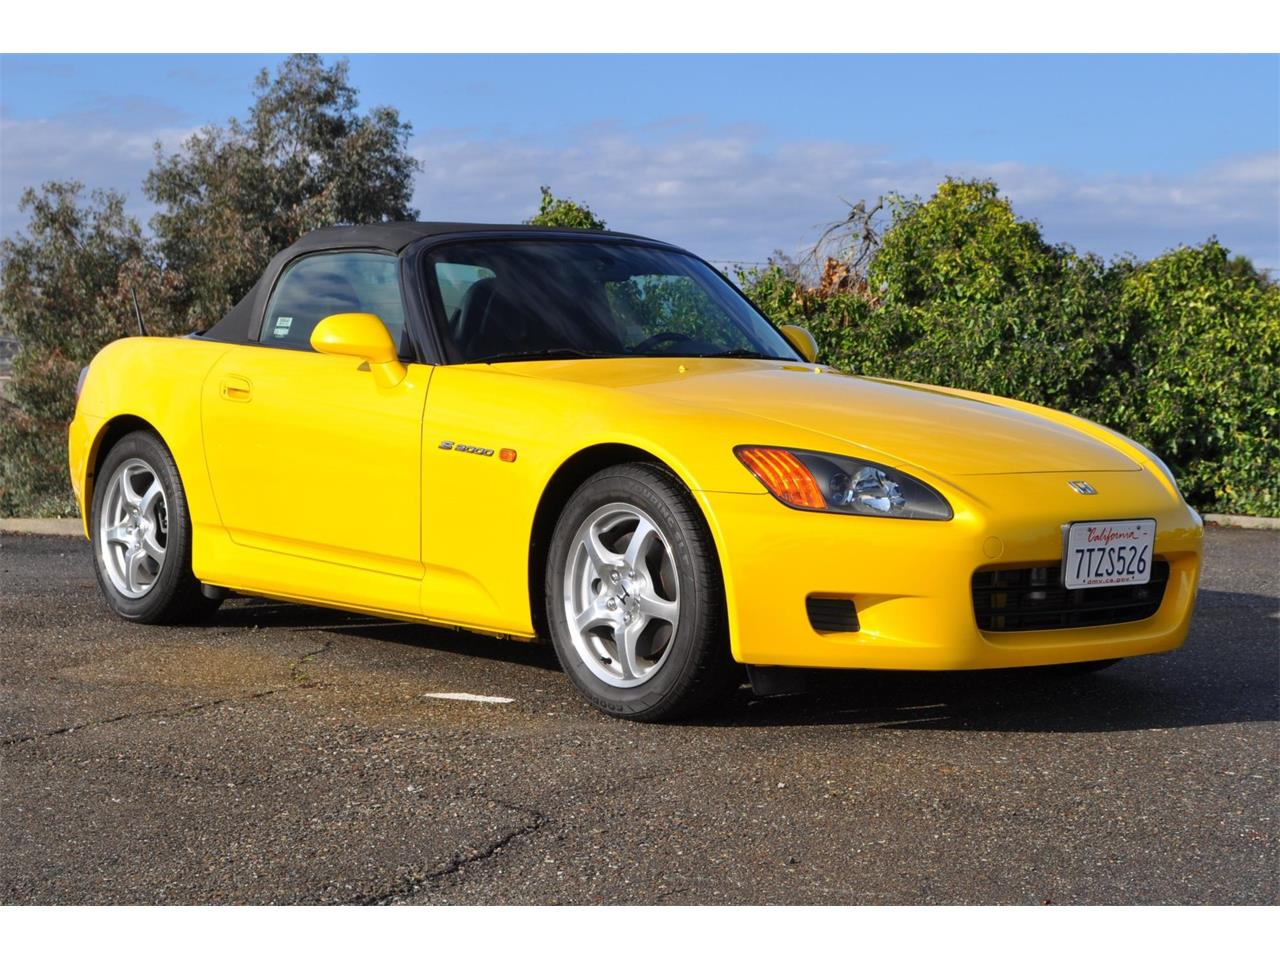 Large Picture of '00 S2000 located in California Auction Vehicle Offered by Bring A Trailer - QP2U